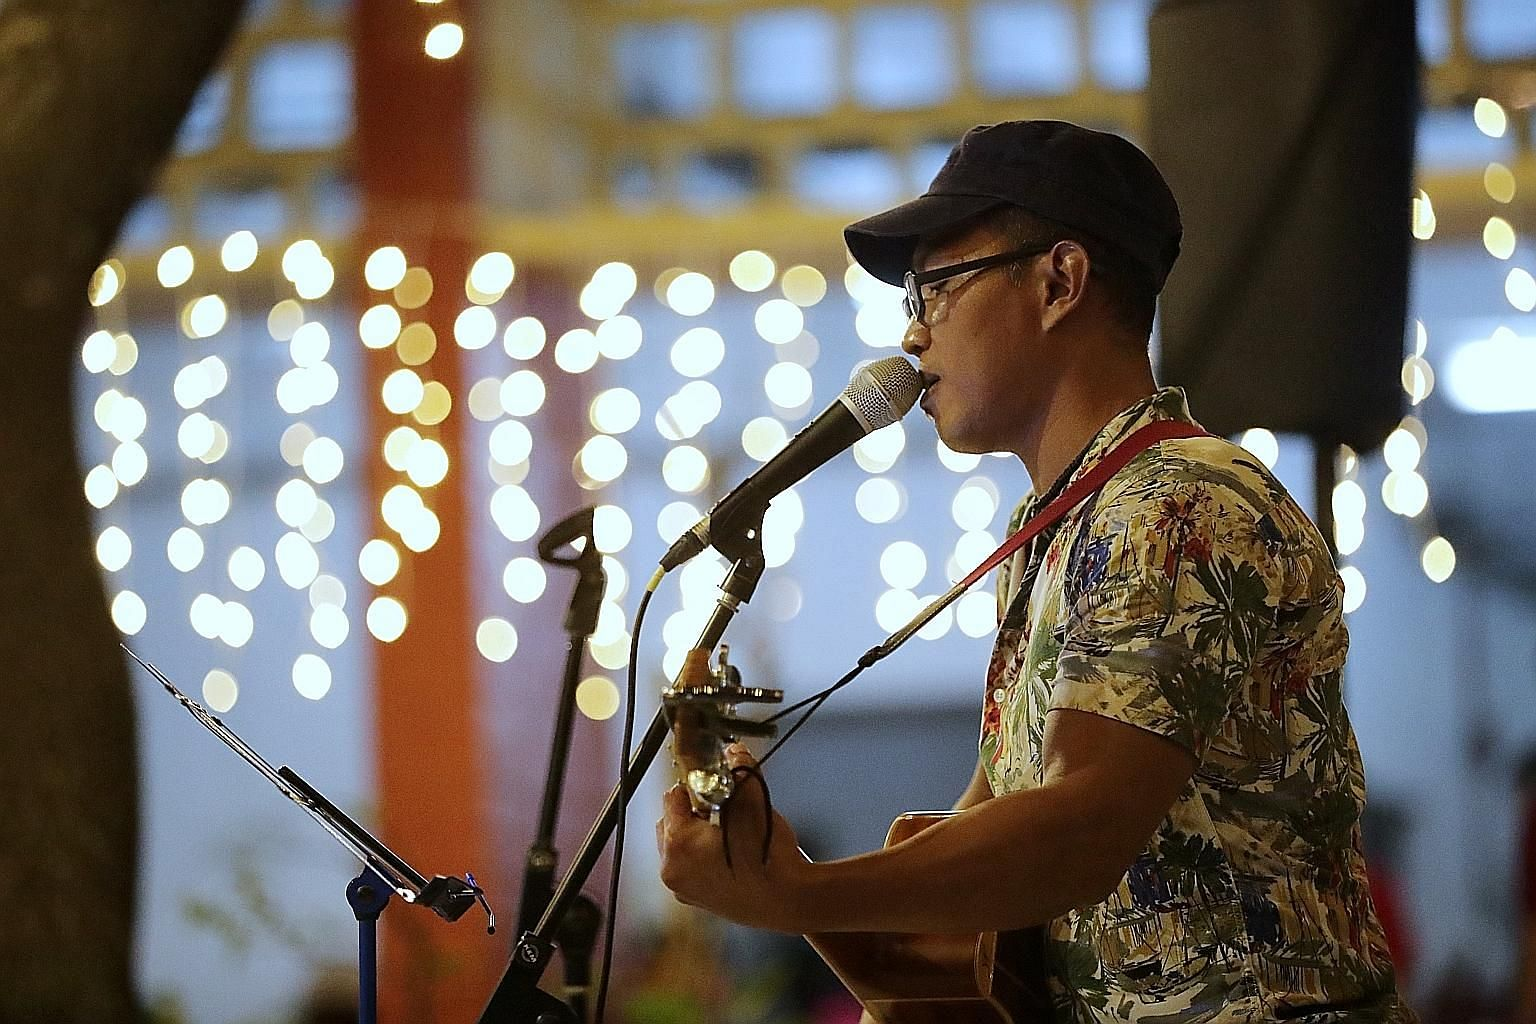 Leo performing at last night's Chinese New Year dinner at Transit Point, an interim shelter for the homeless in Margaret Drive. He was homeless for a few months after being released from prison for drug offences last year, and is currently staying at